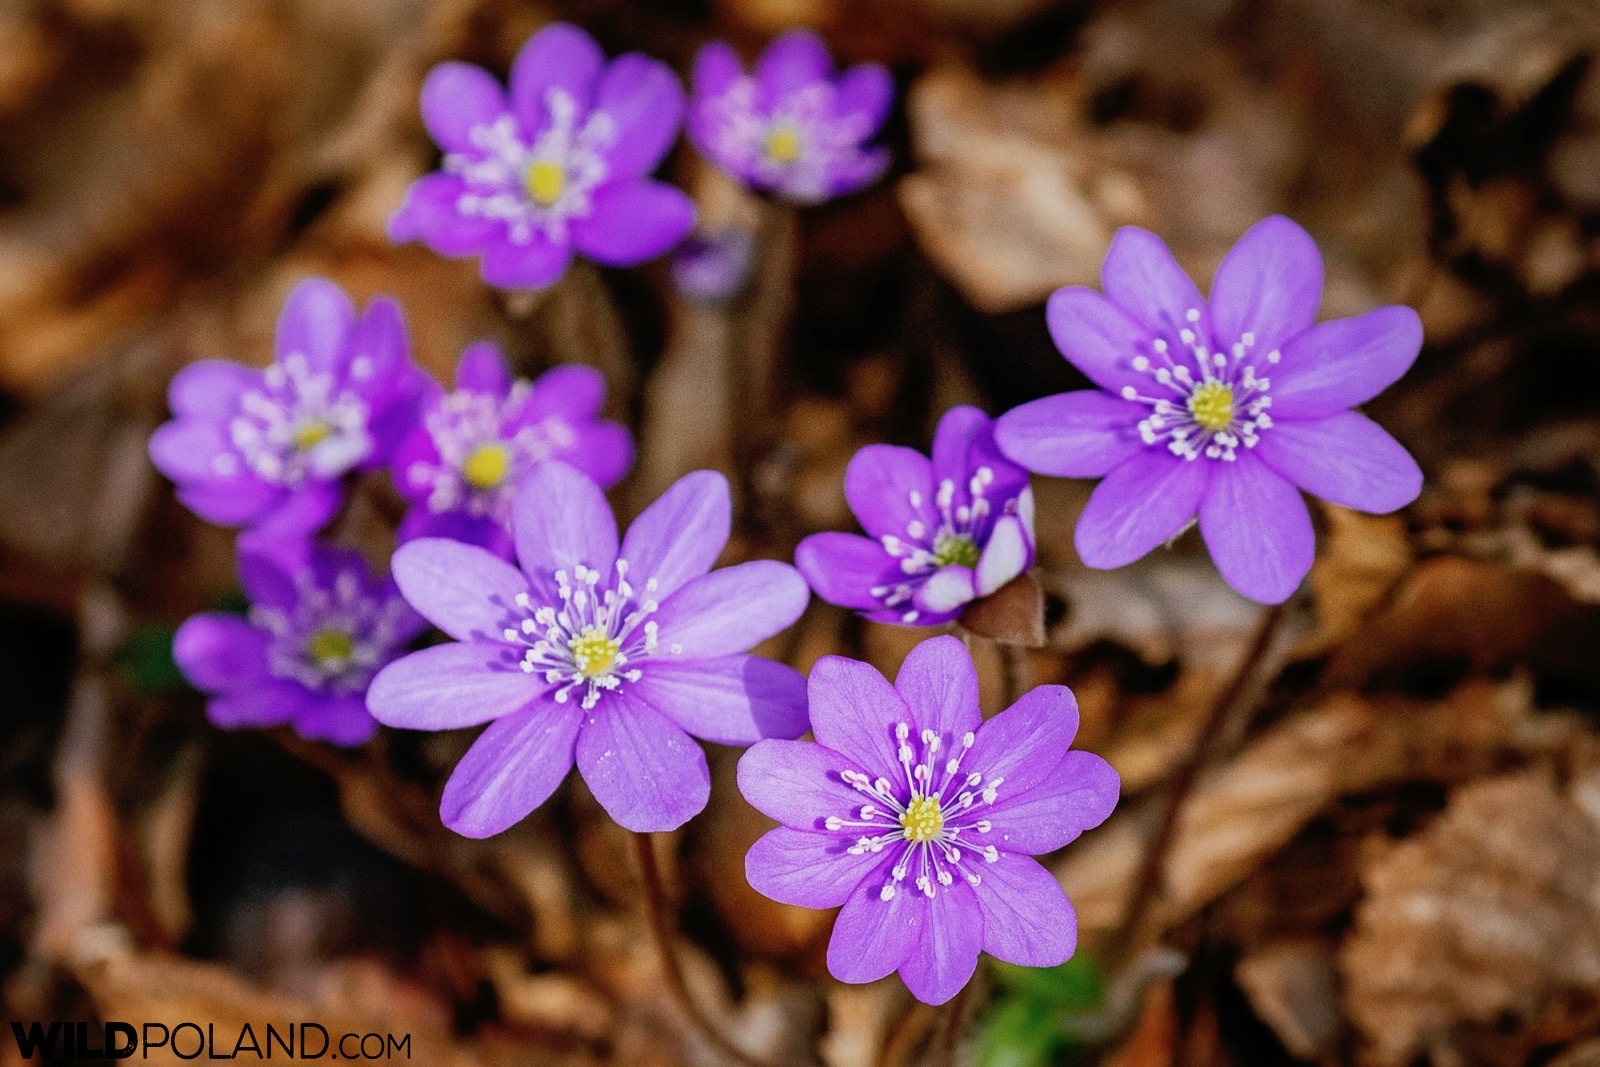 Hepatica - one of the earliers flowers to bloom in the Białowieża Forest 